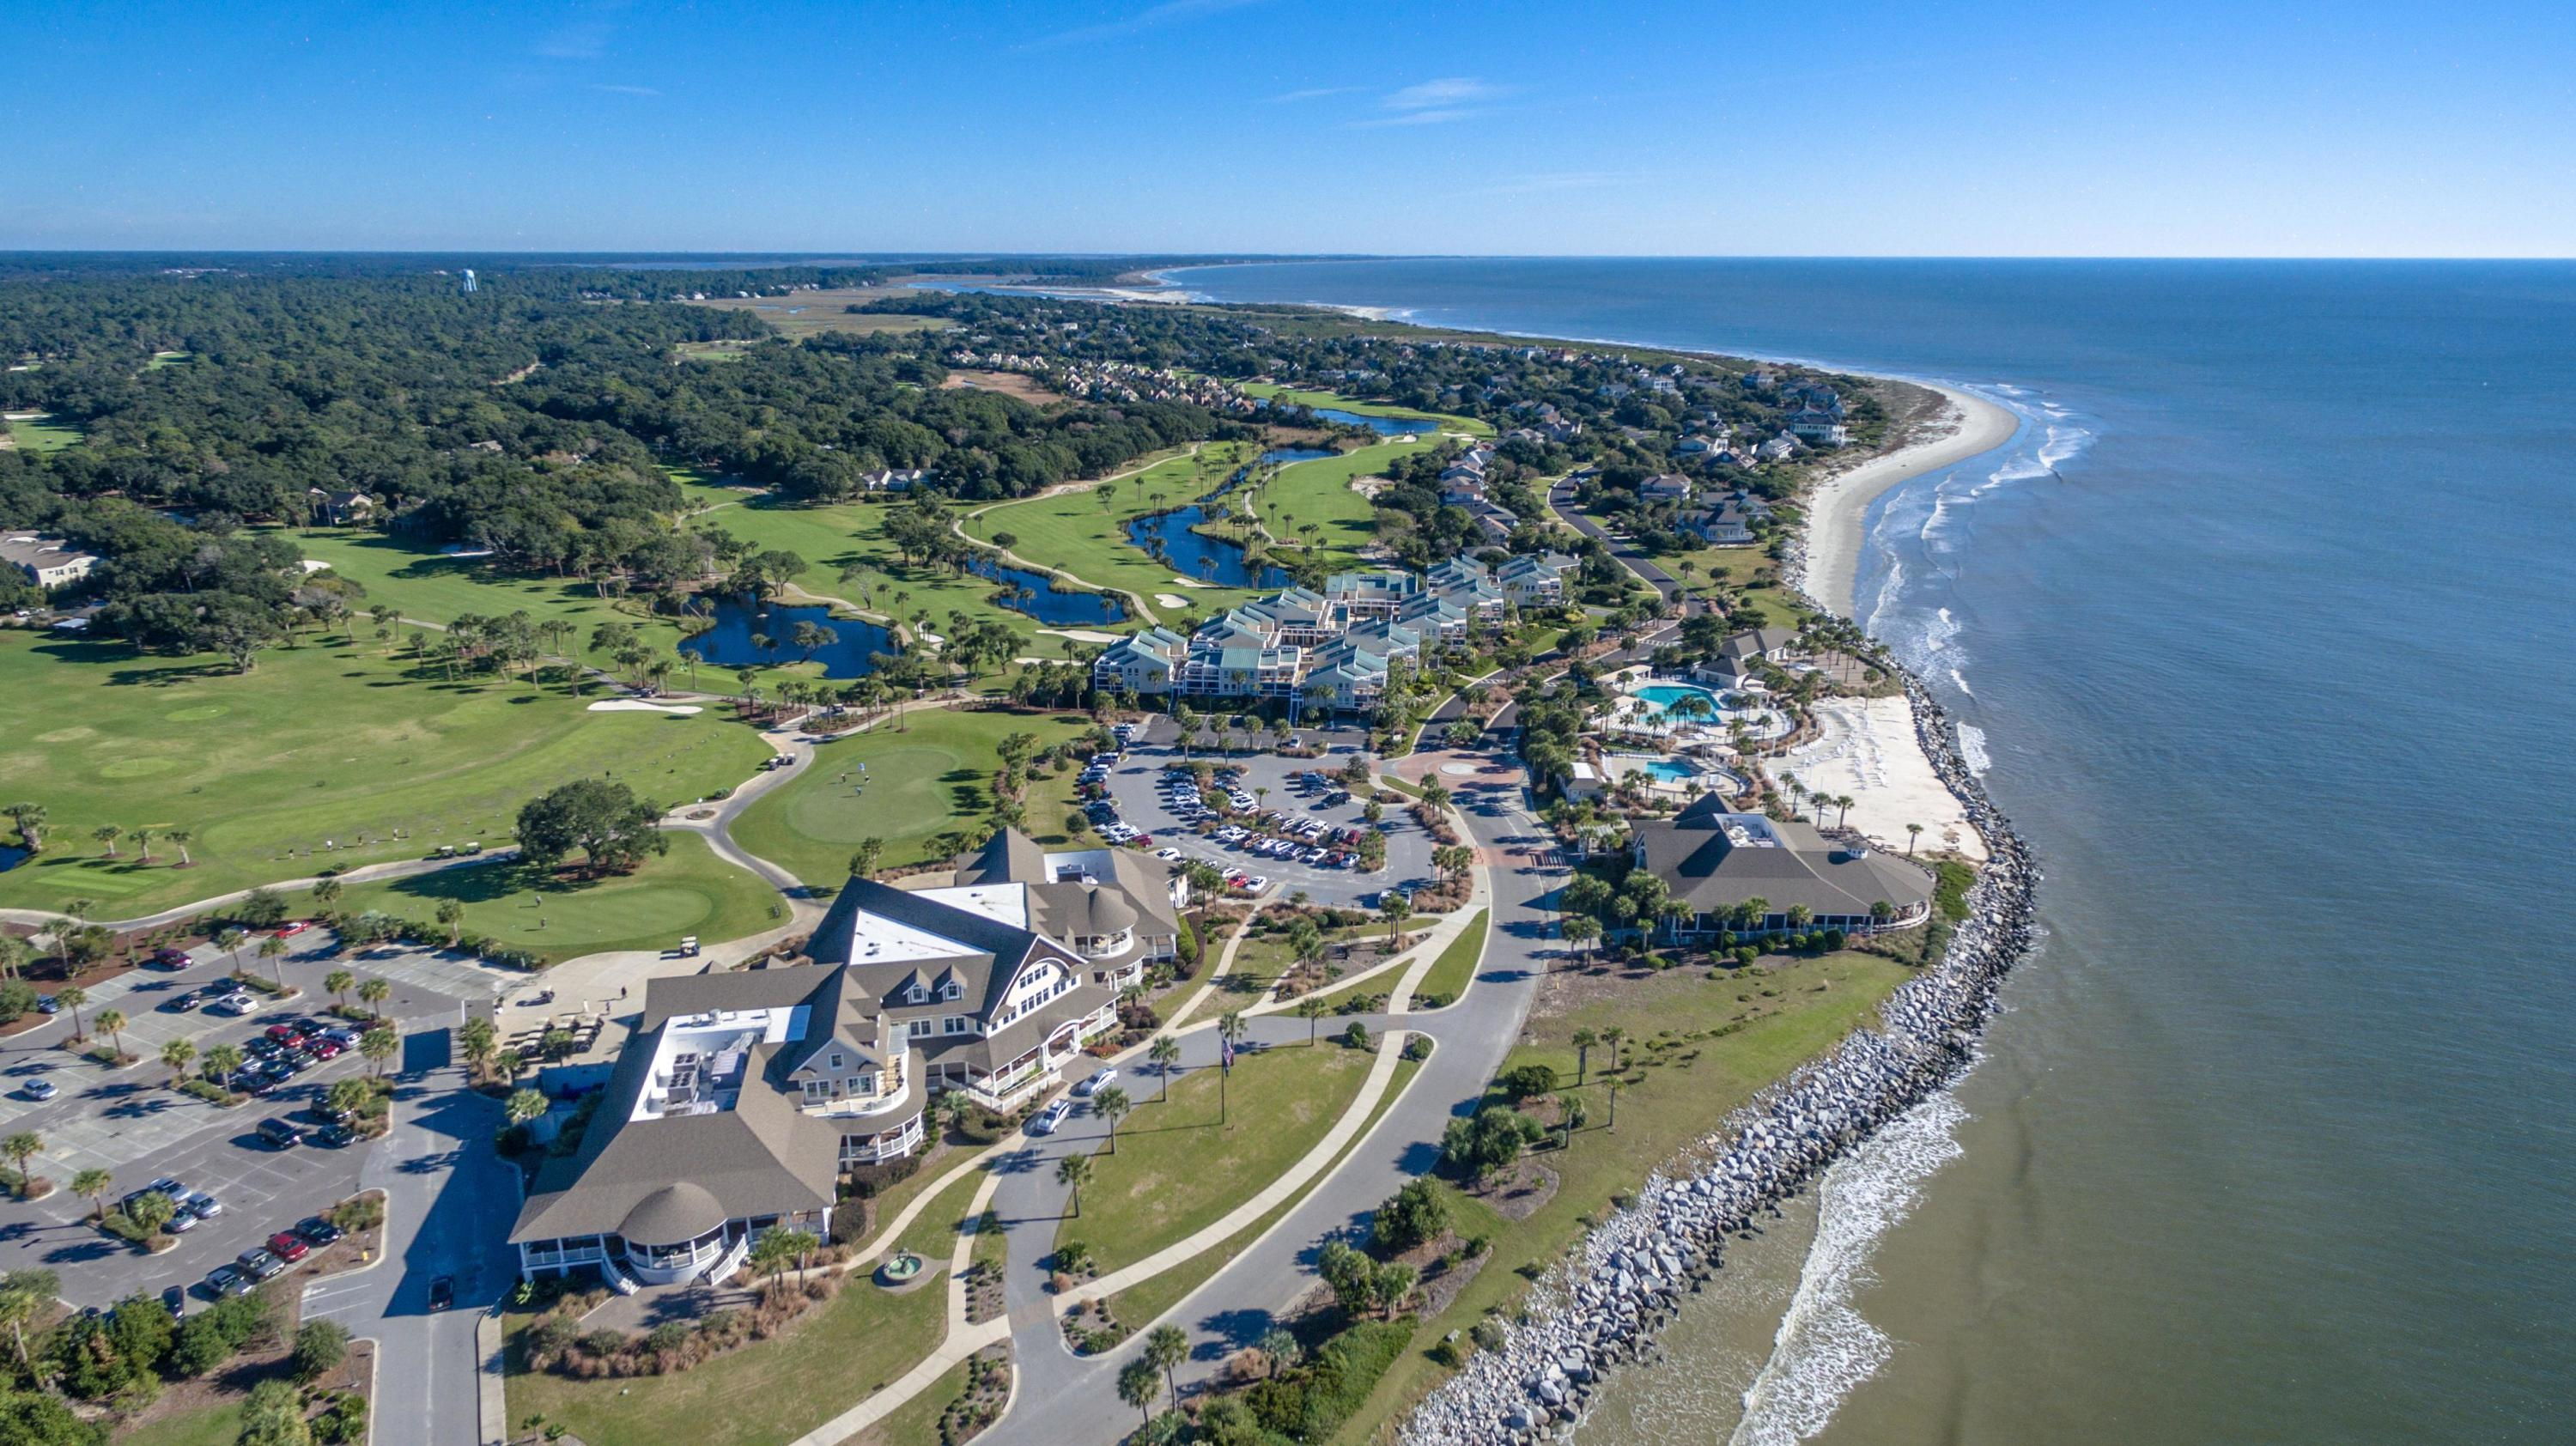 Seabrook Island Homes For Sale - 2957 Seabrook Island, Seabrook Island, SC - 51